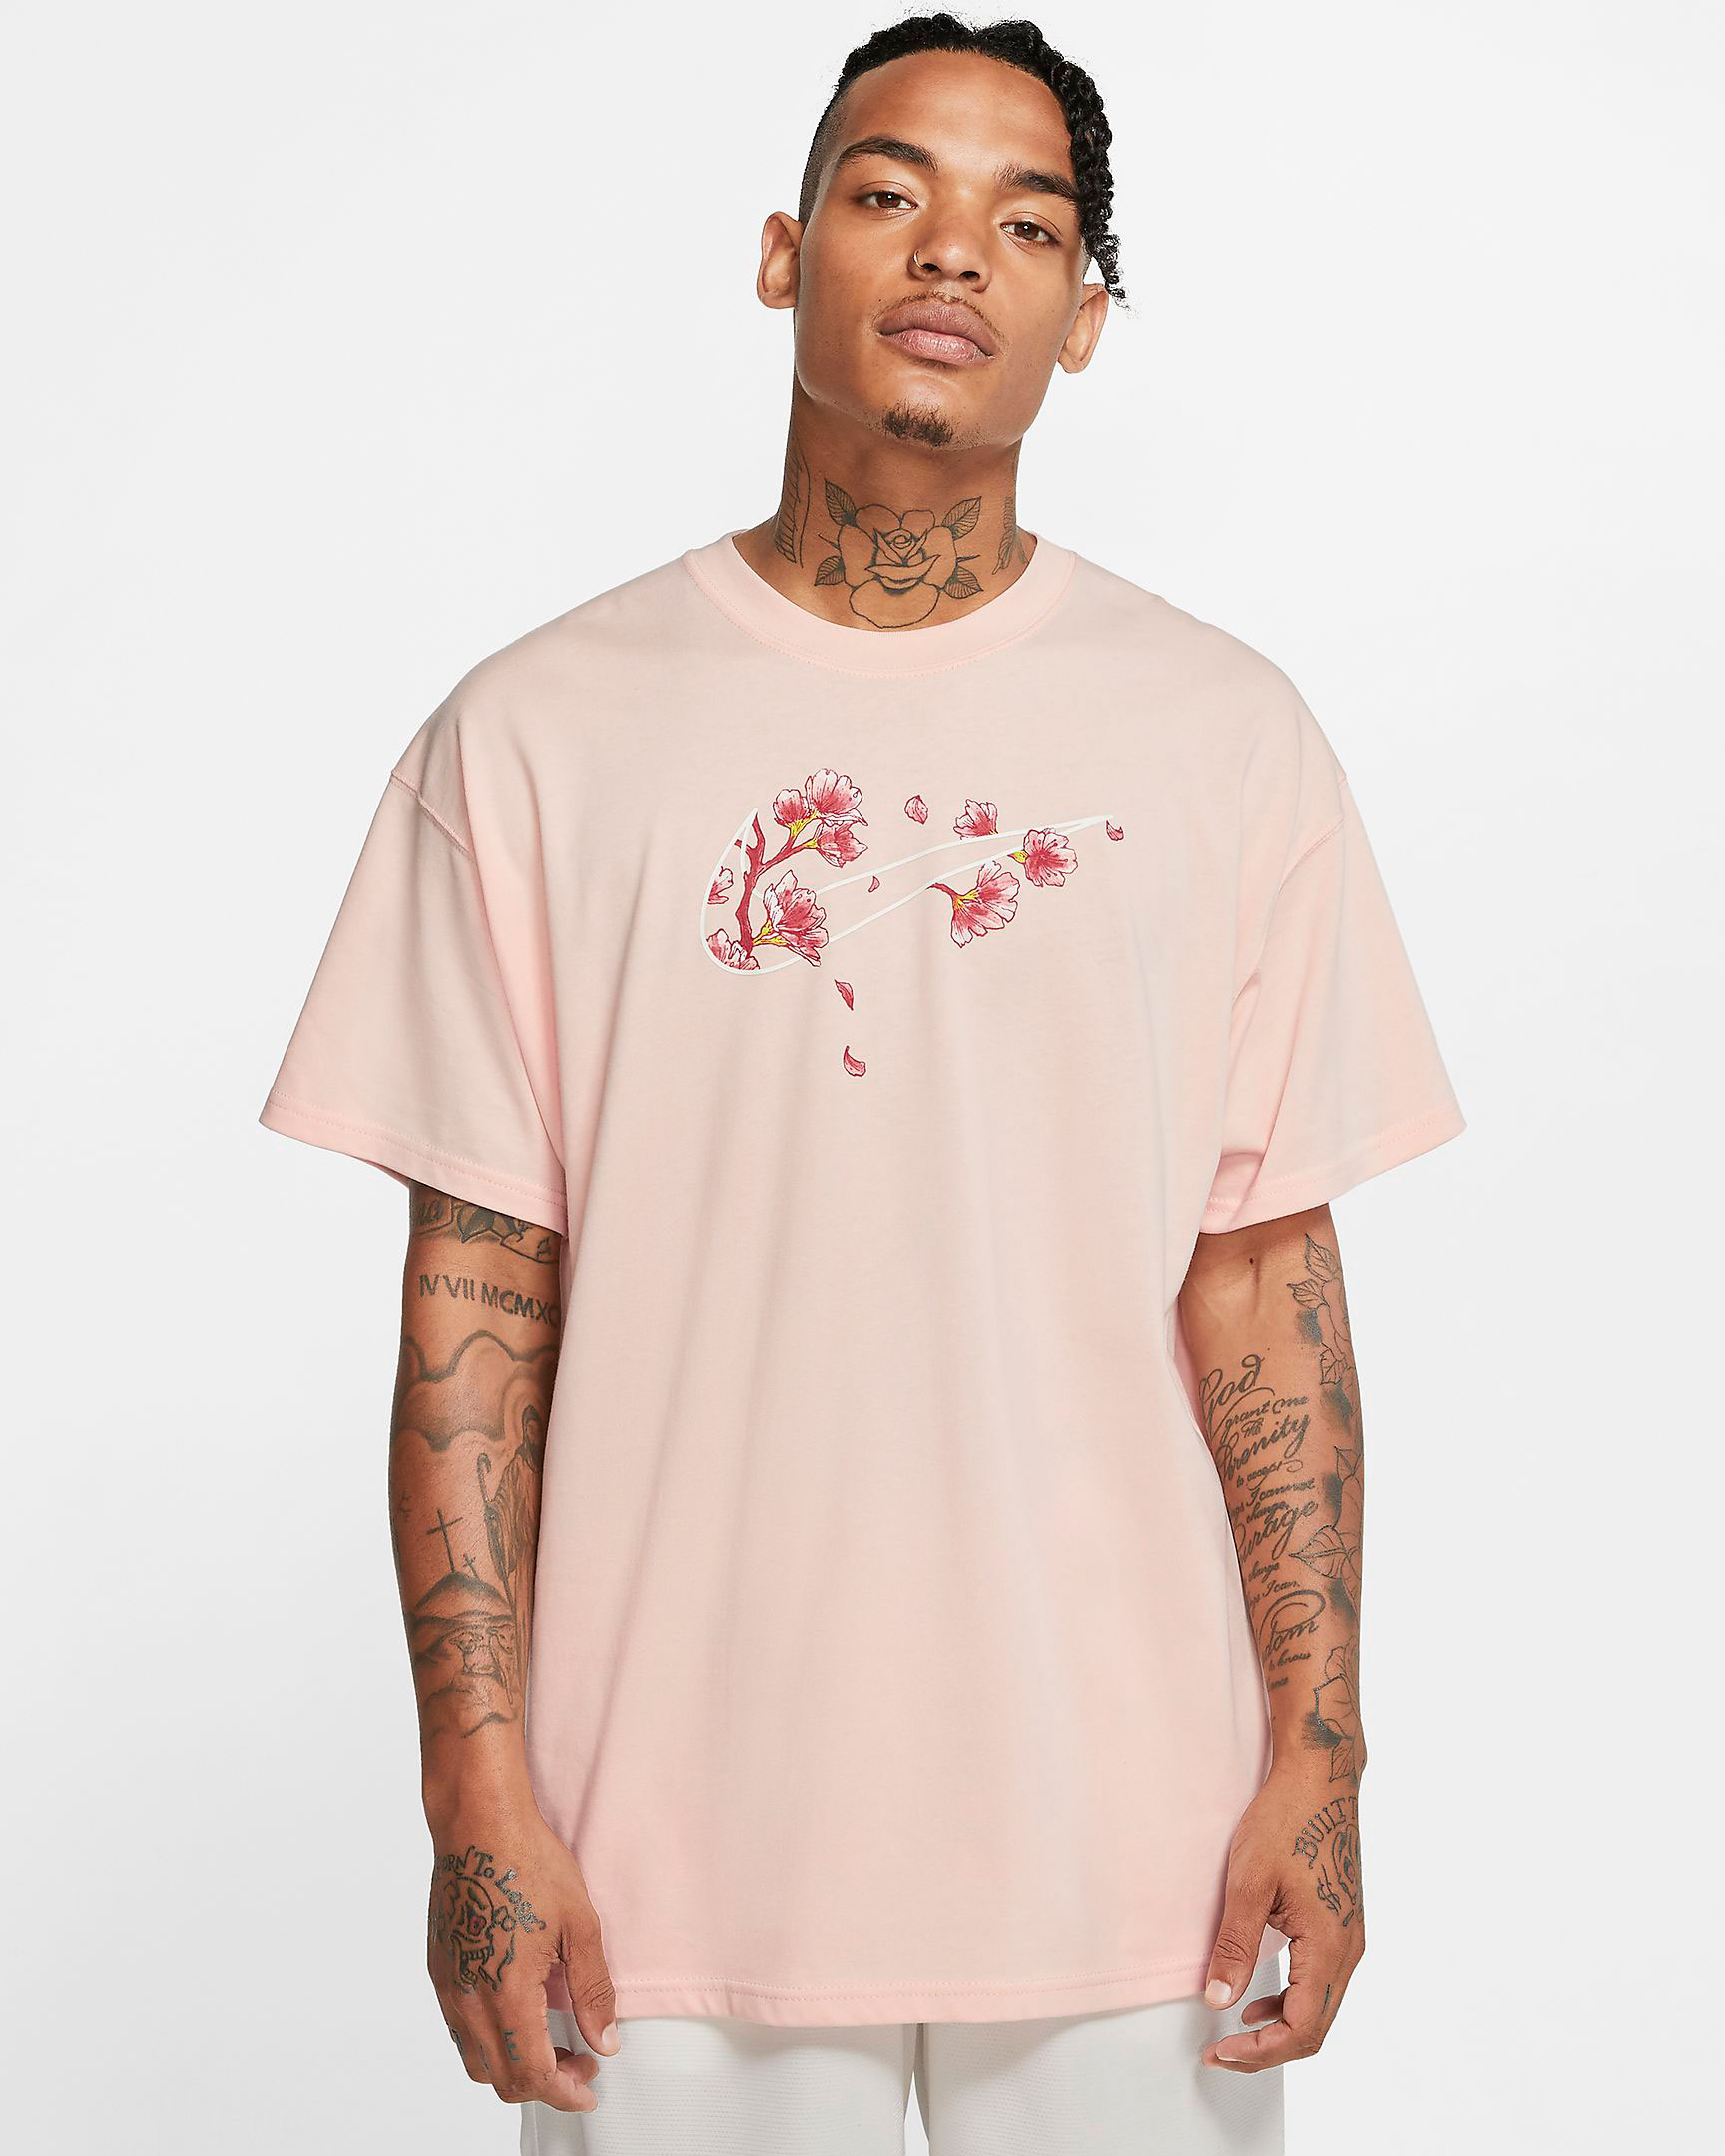 nike-kd-12-aunt-pearl-shirt-match